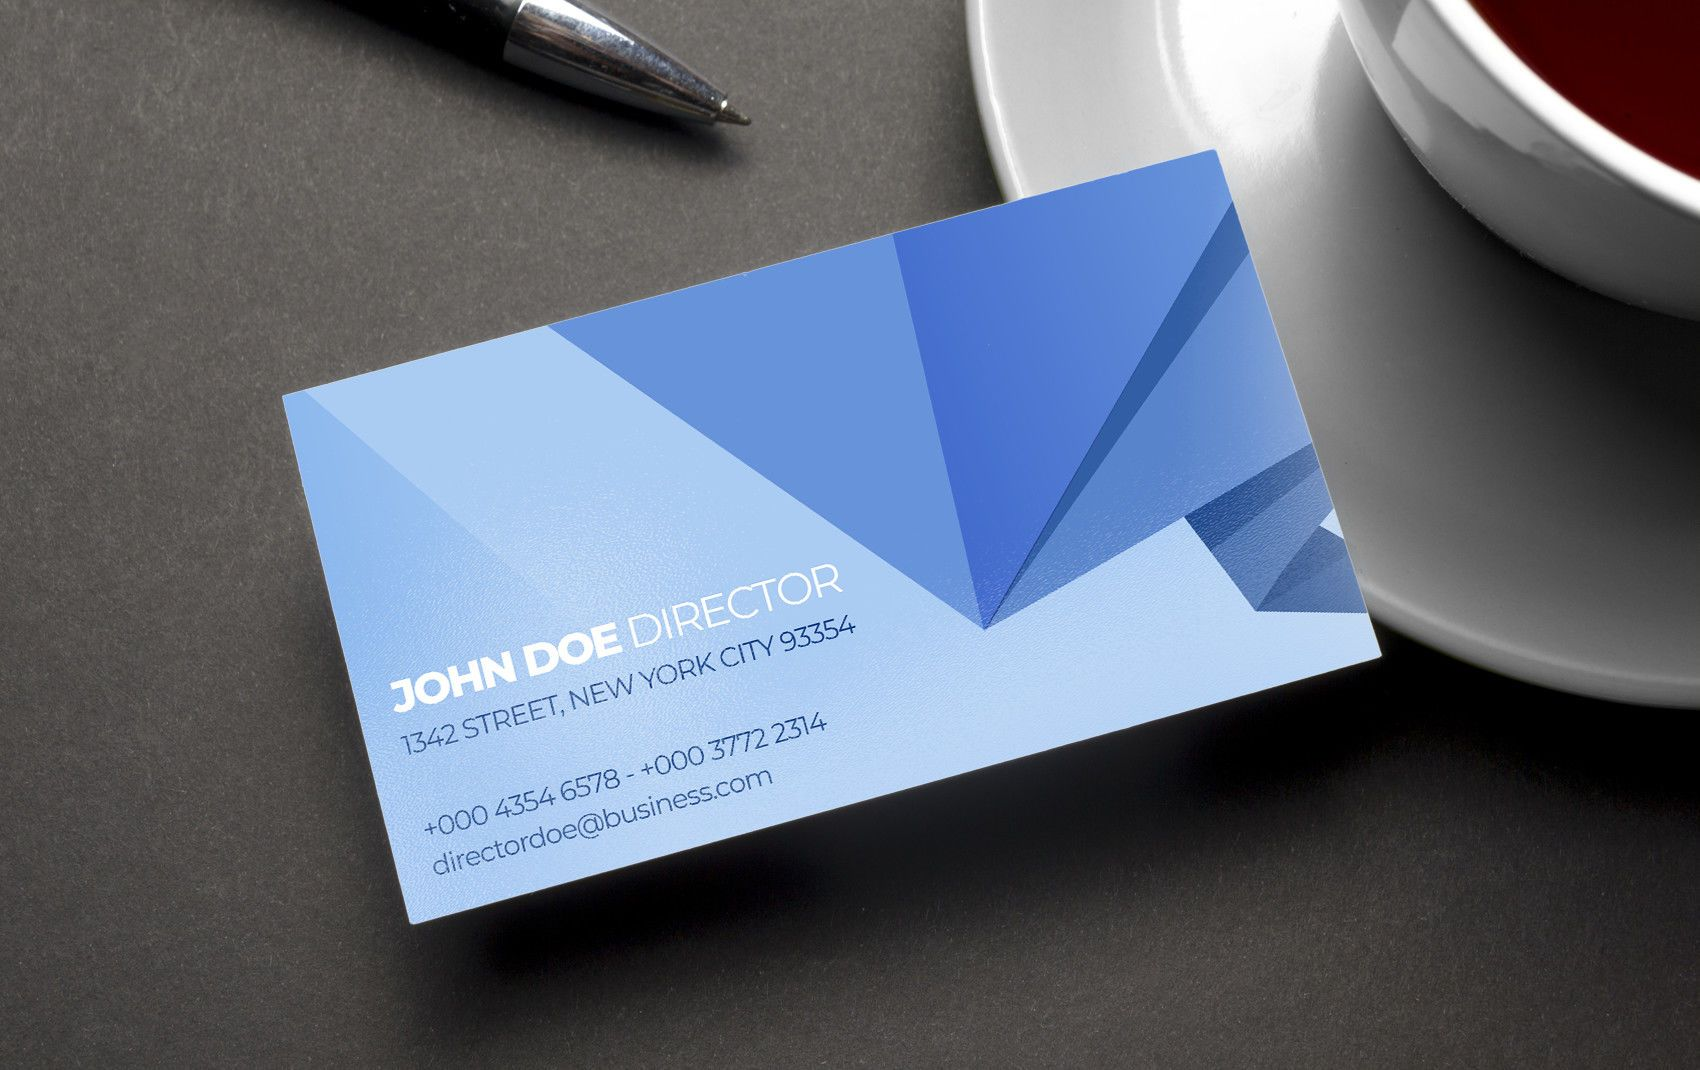 Abstract Polygonal Origami Business Card